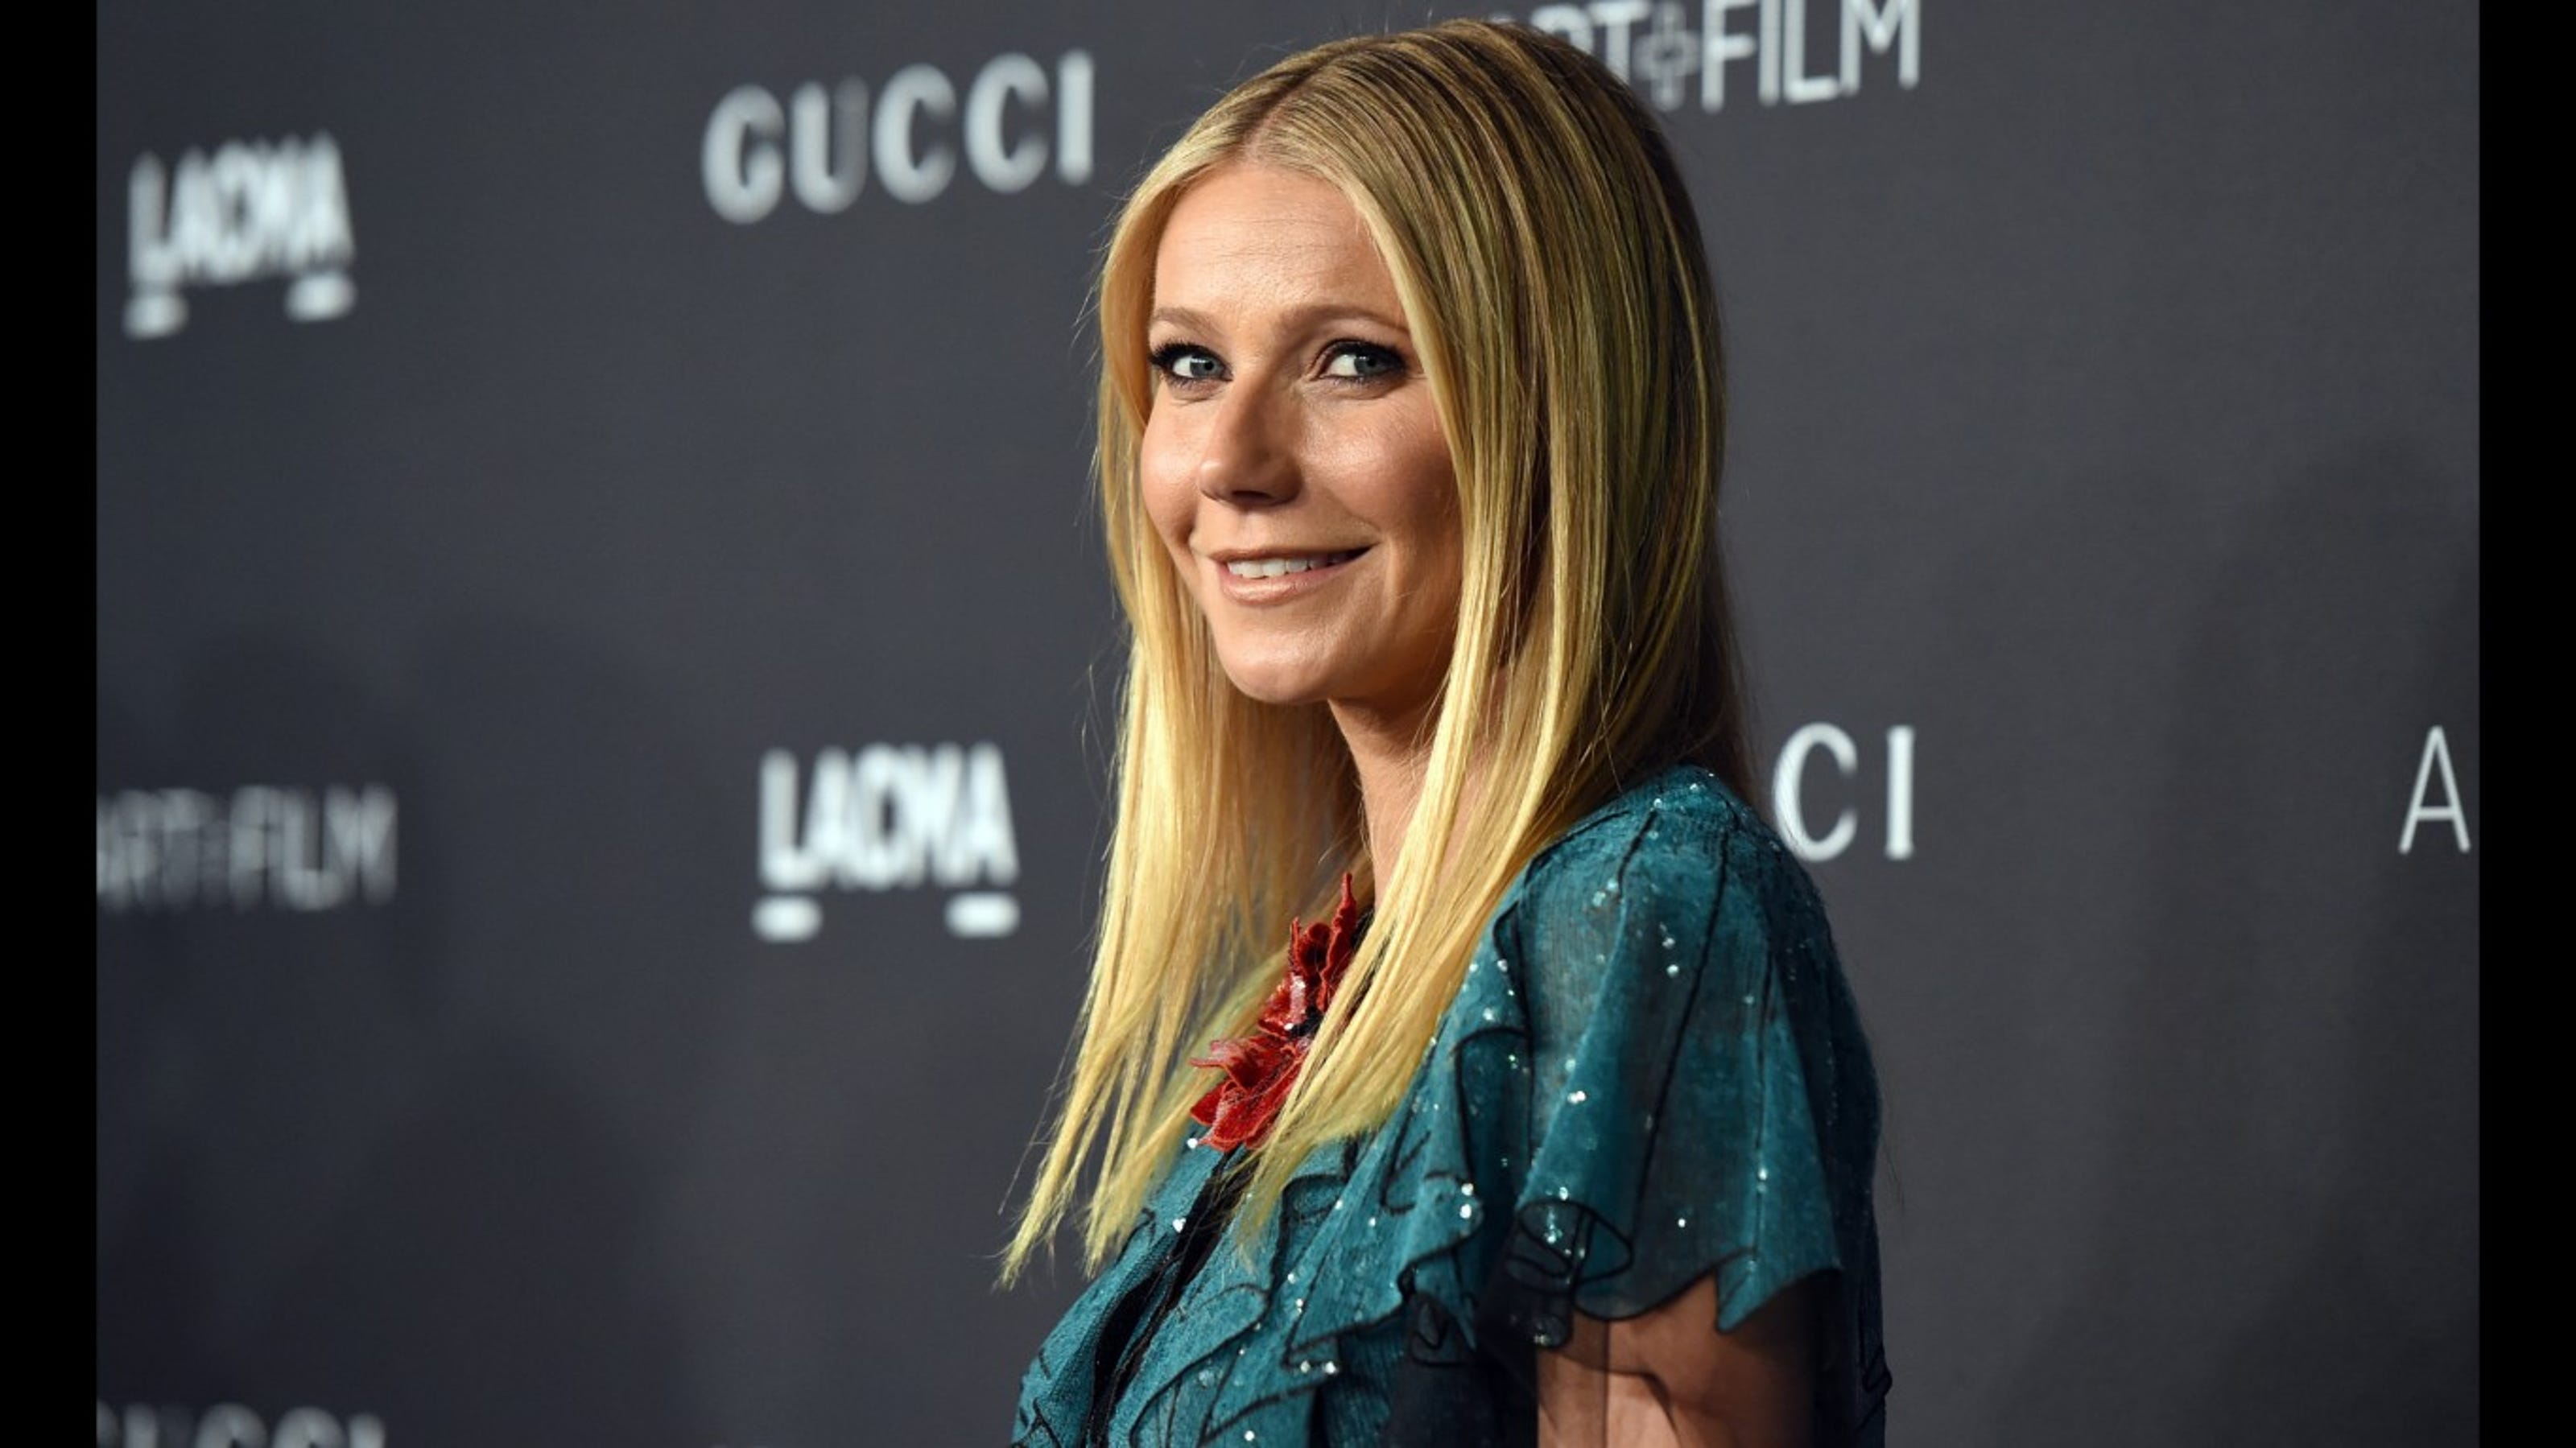 Gwyneth Paltrow's daughter Apple calls out famous mom for posting photo without 'consent'